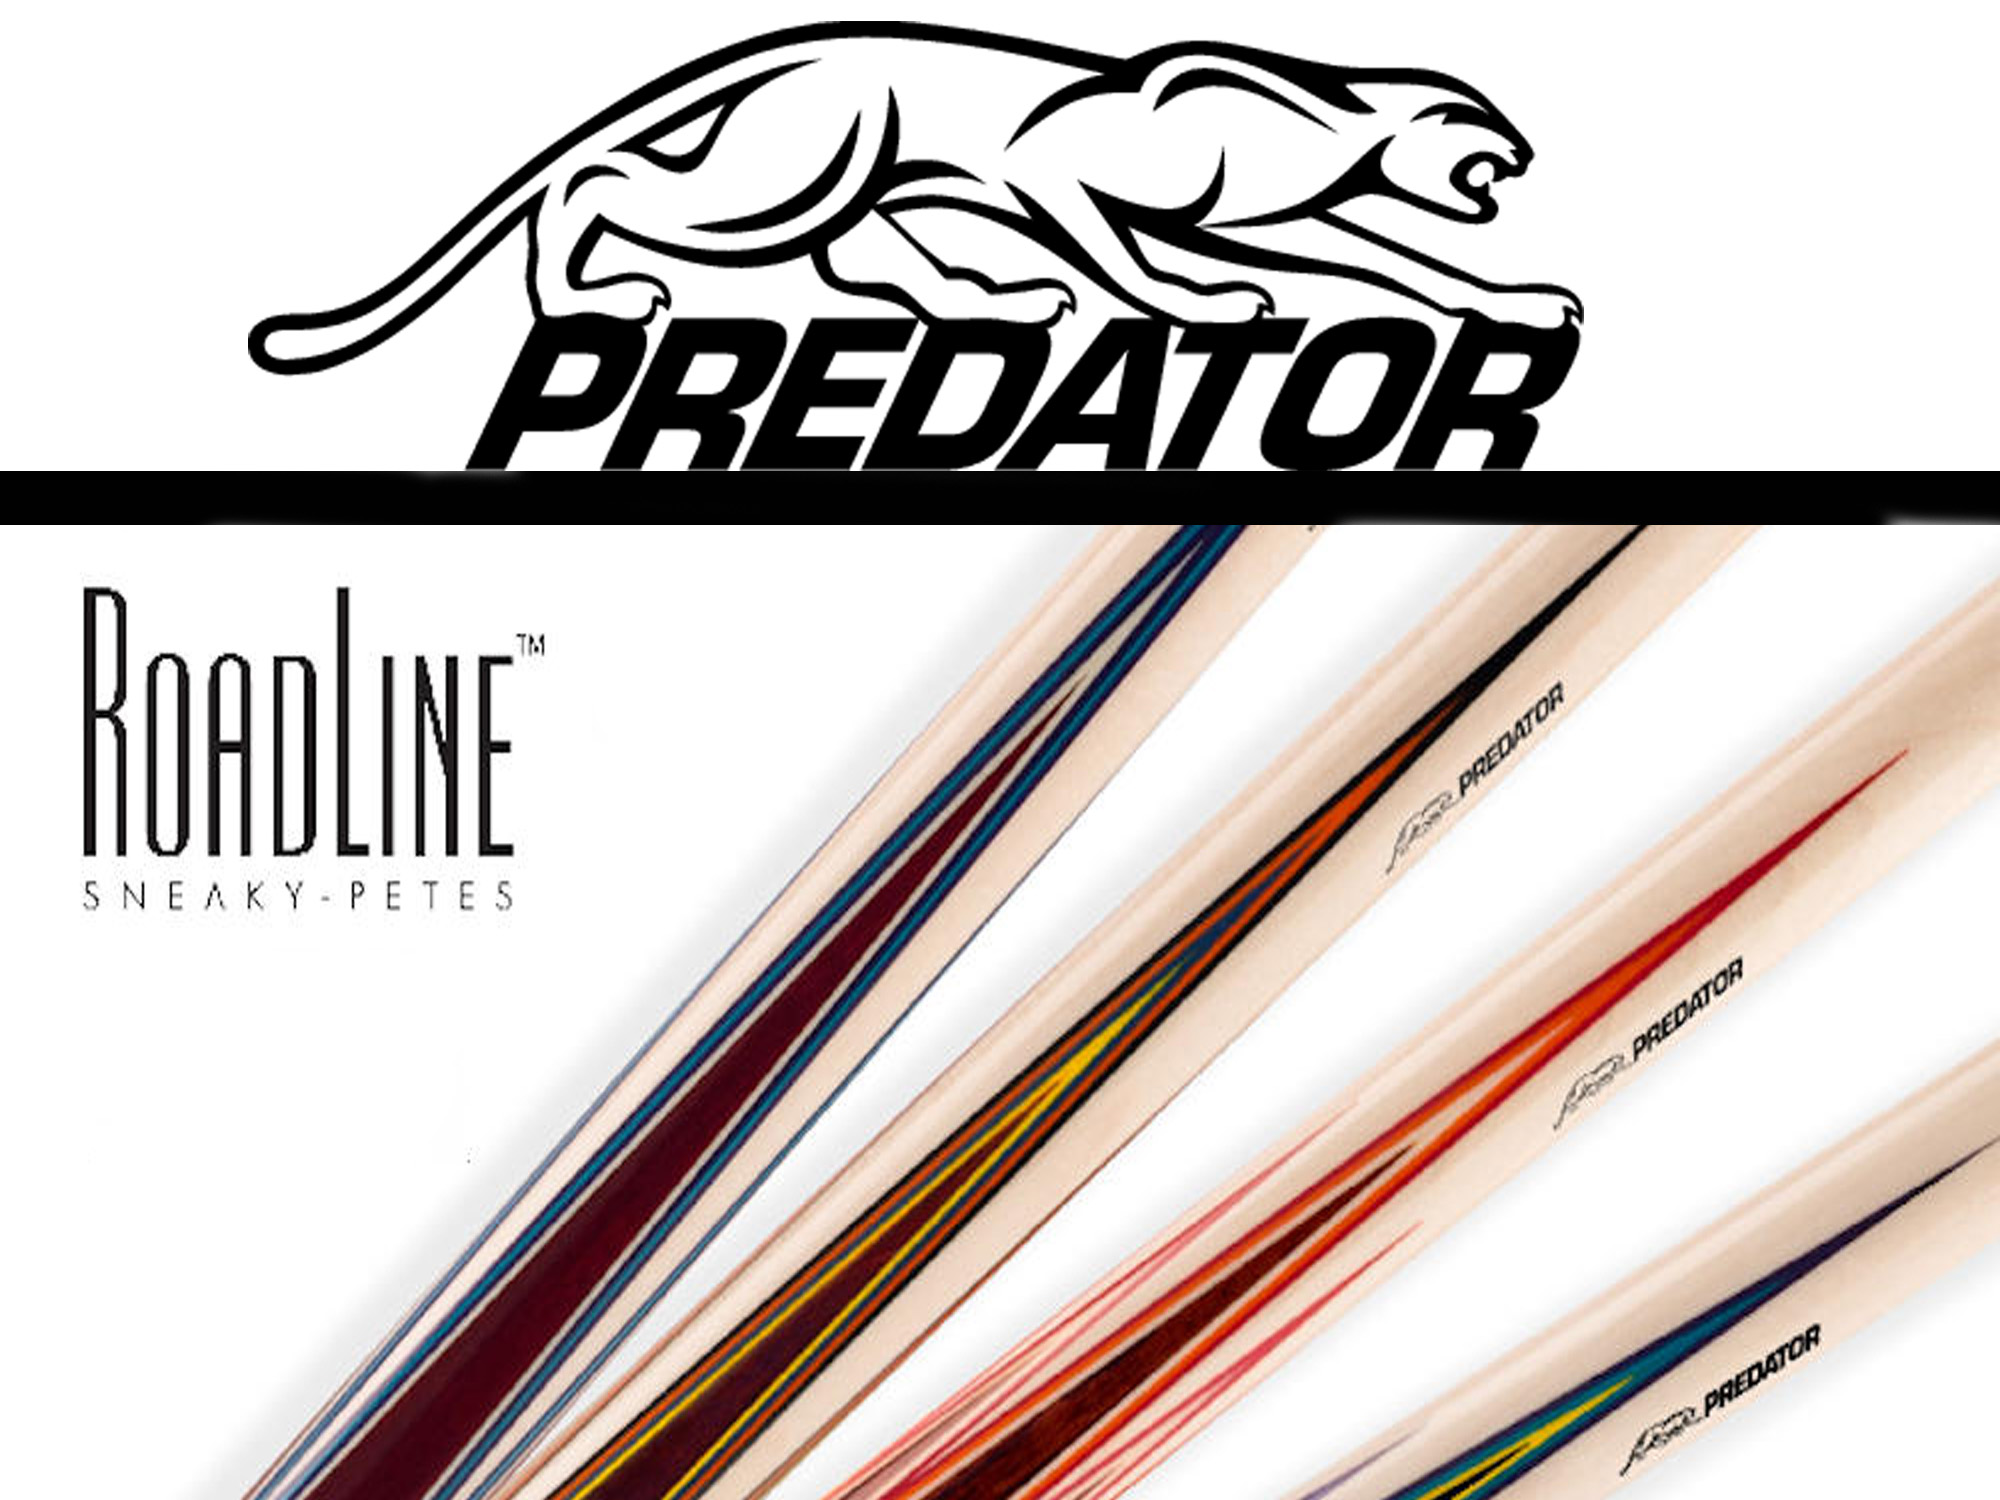 Predator Roadline Sneaky Peates, everything you need to know about these new cues.